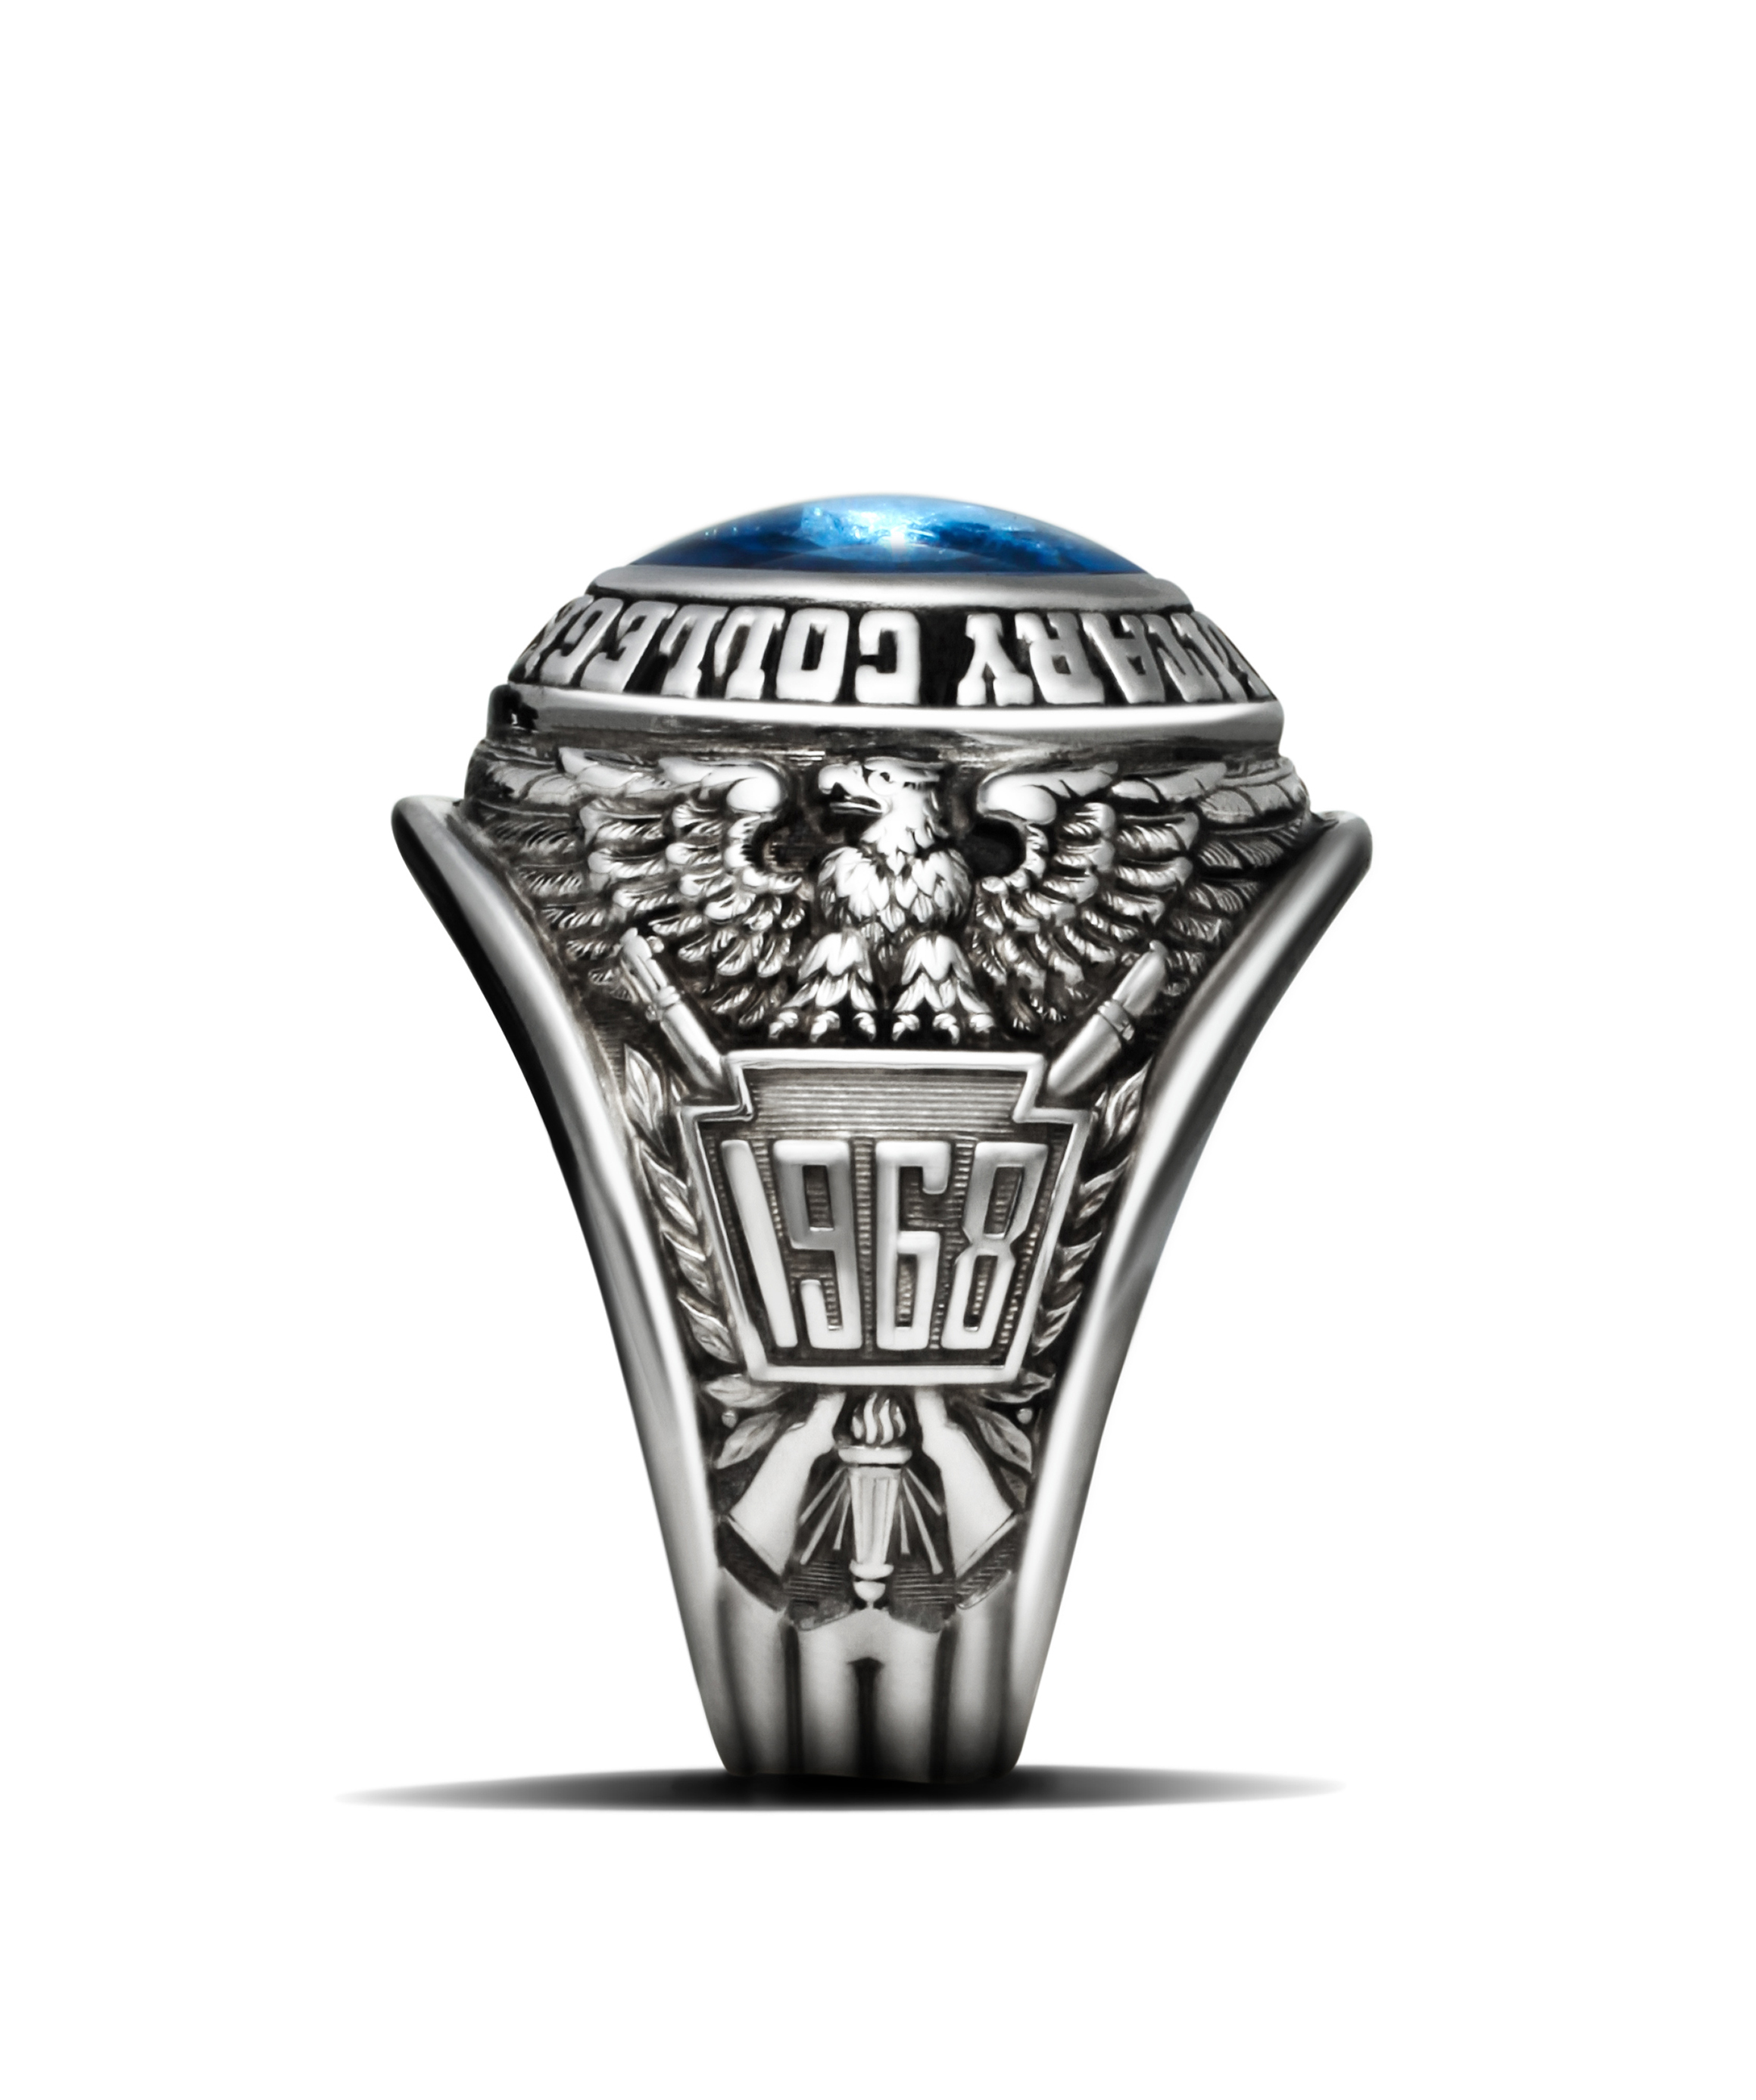 Symbolism of the class ring pennsylvania military college ring side b buycottarizona Image collections